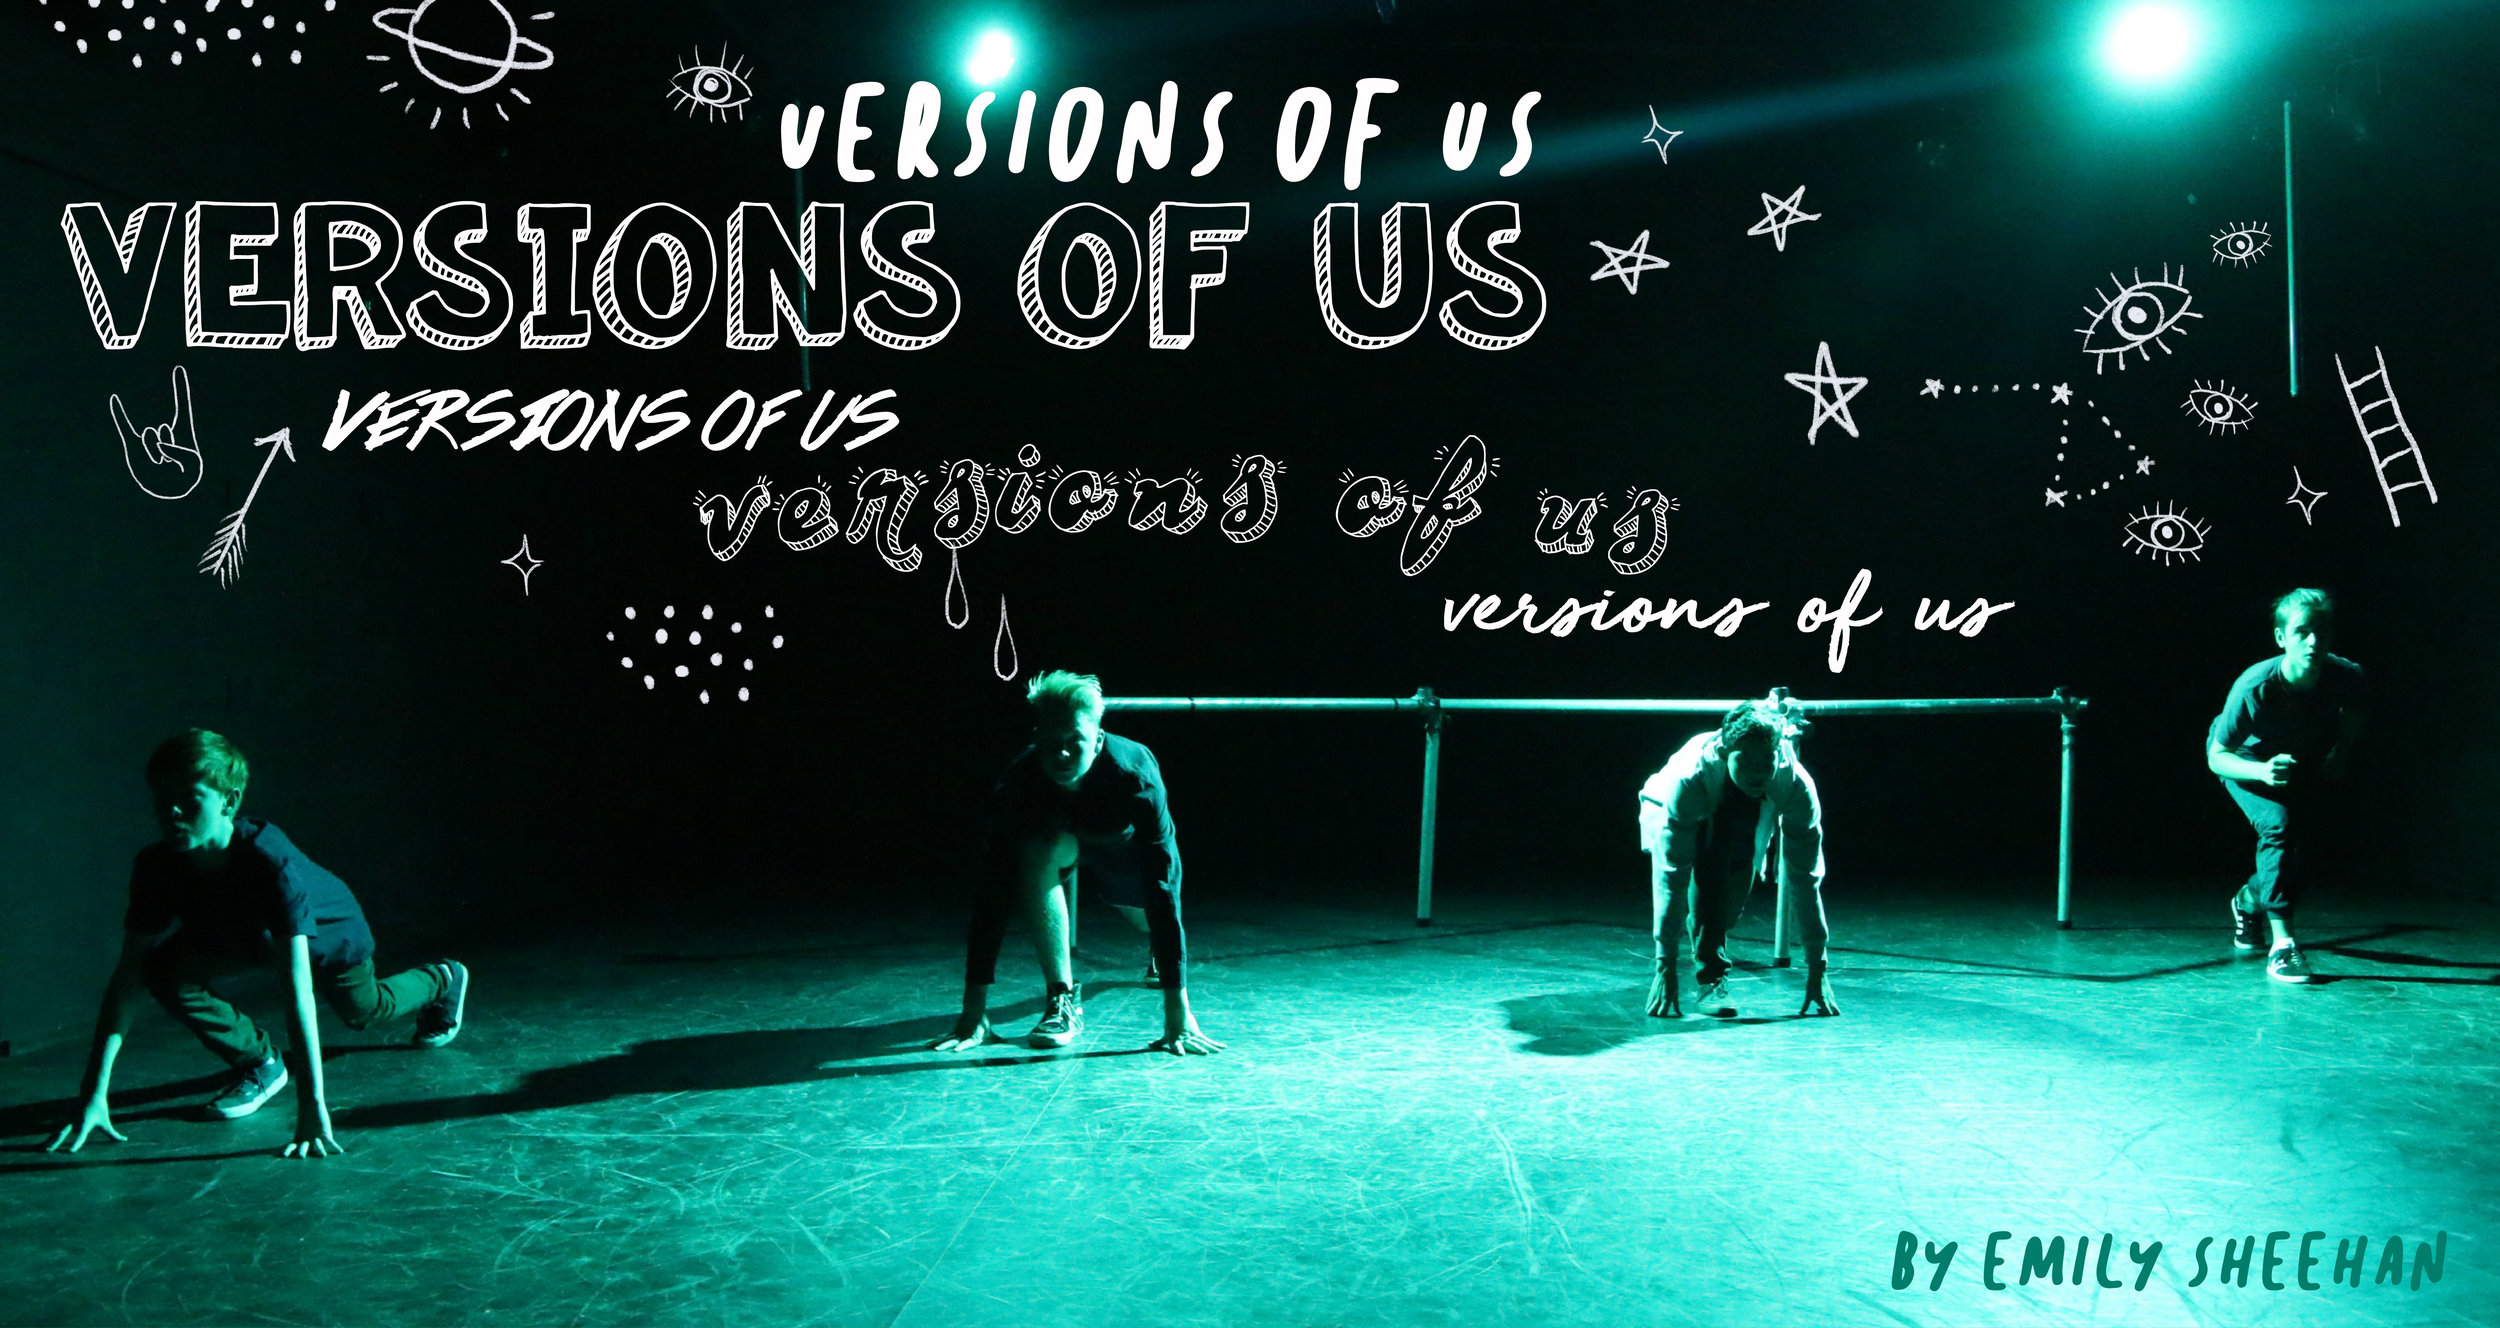 versions-of-us-by-emily-sheehan